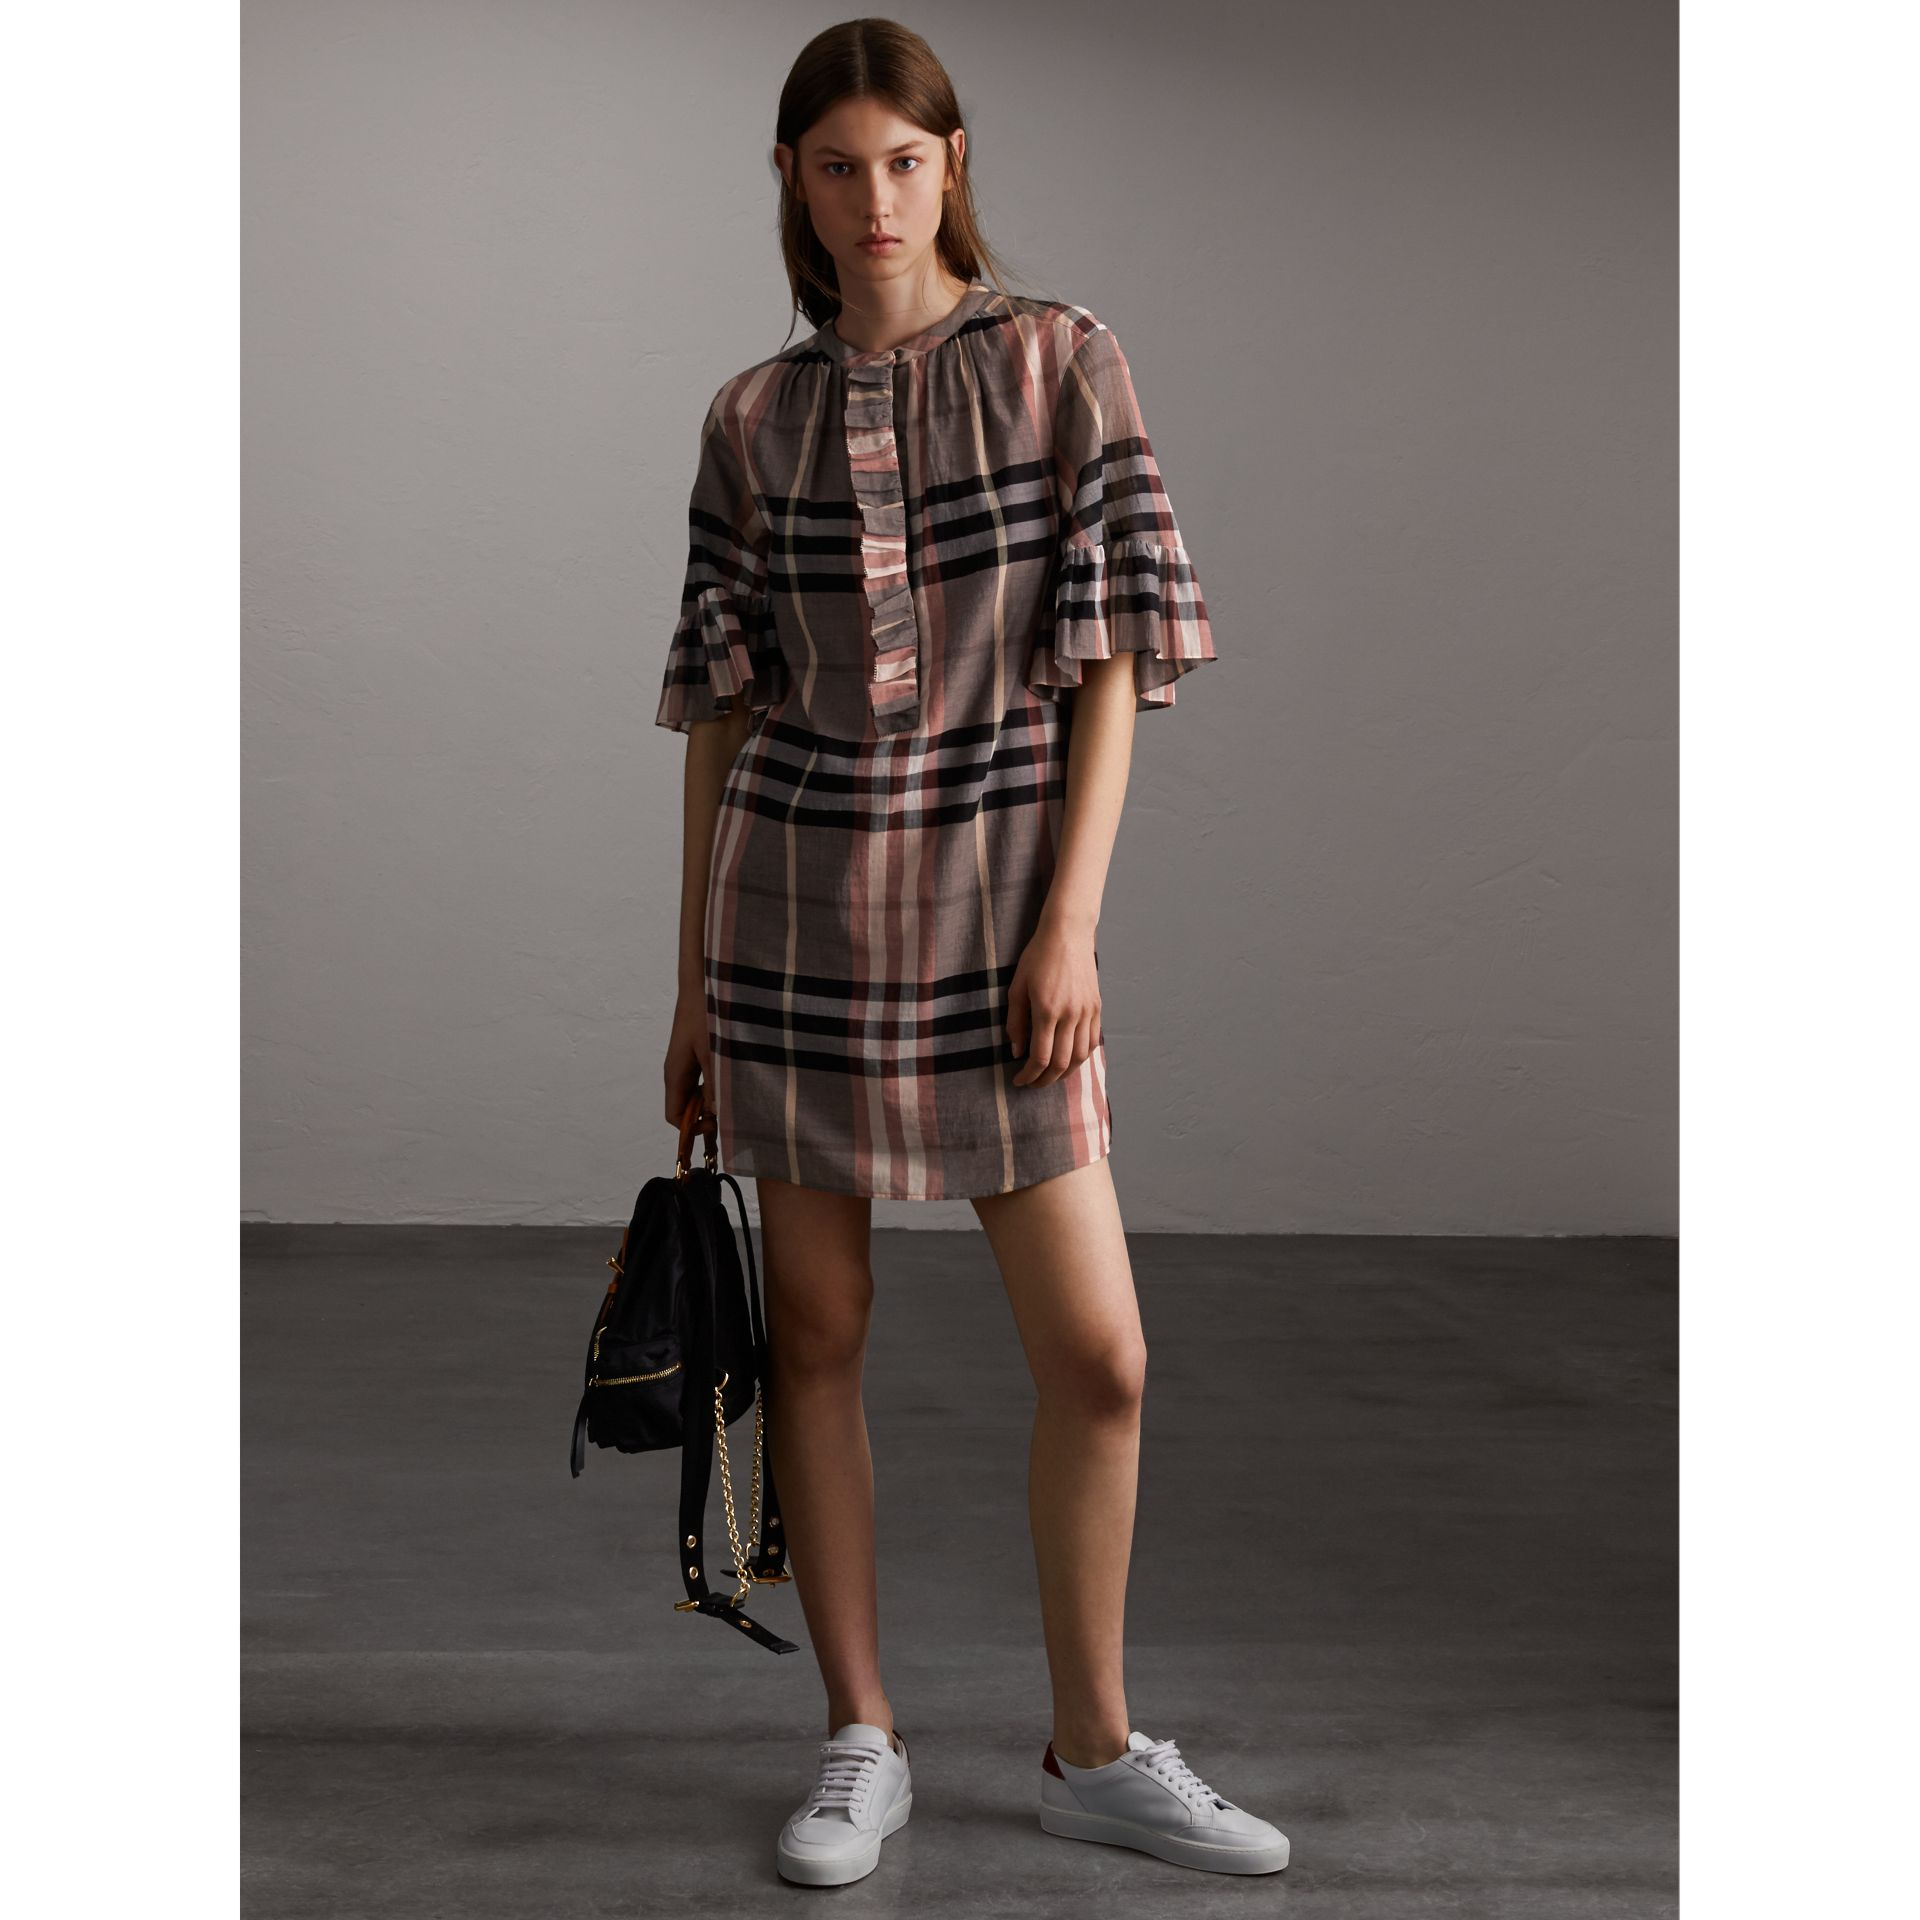 Ruffled Placket Check Cotton Dress in Dusty Pink - Women | Burberry - gallery image 1